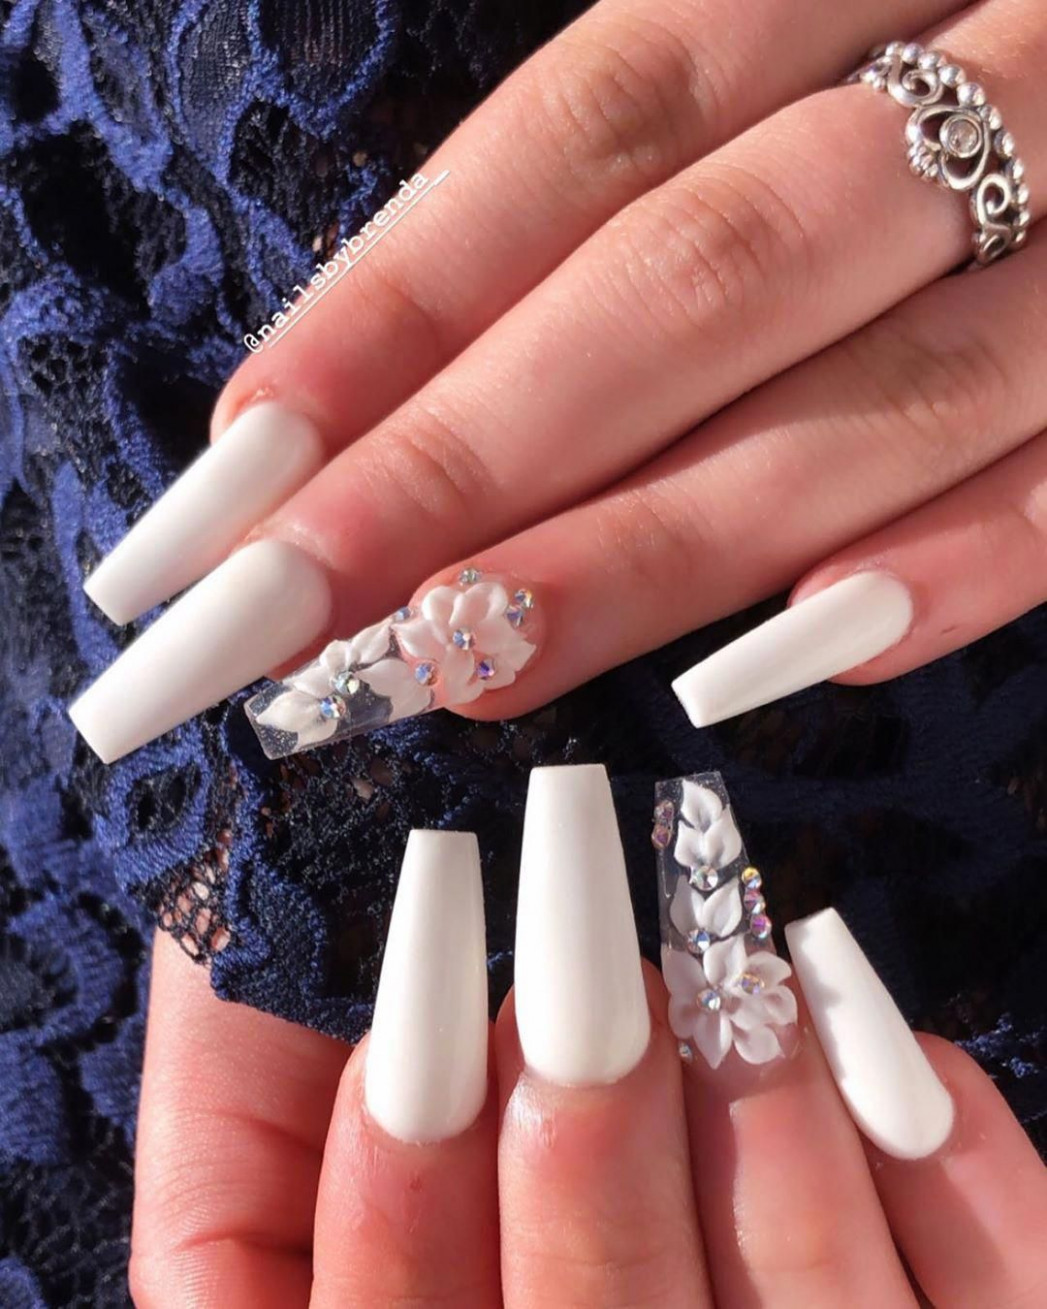 Cute white coffin nails design with accent floral nail